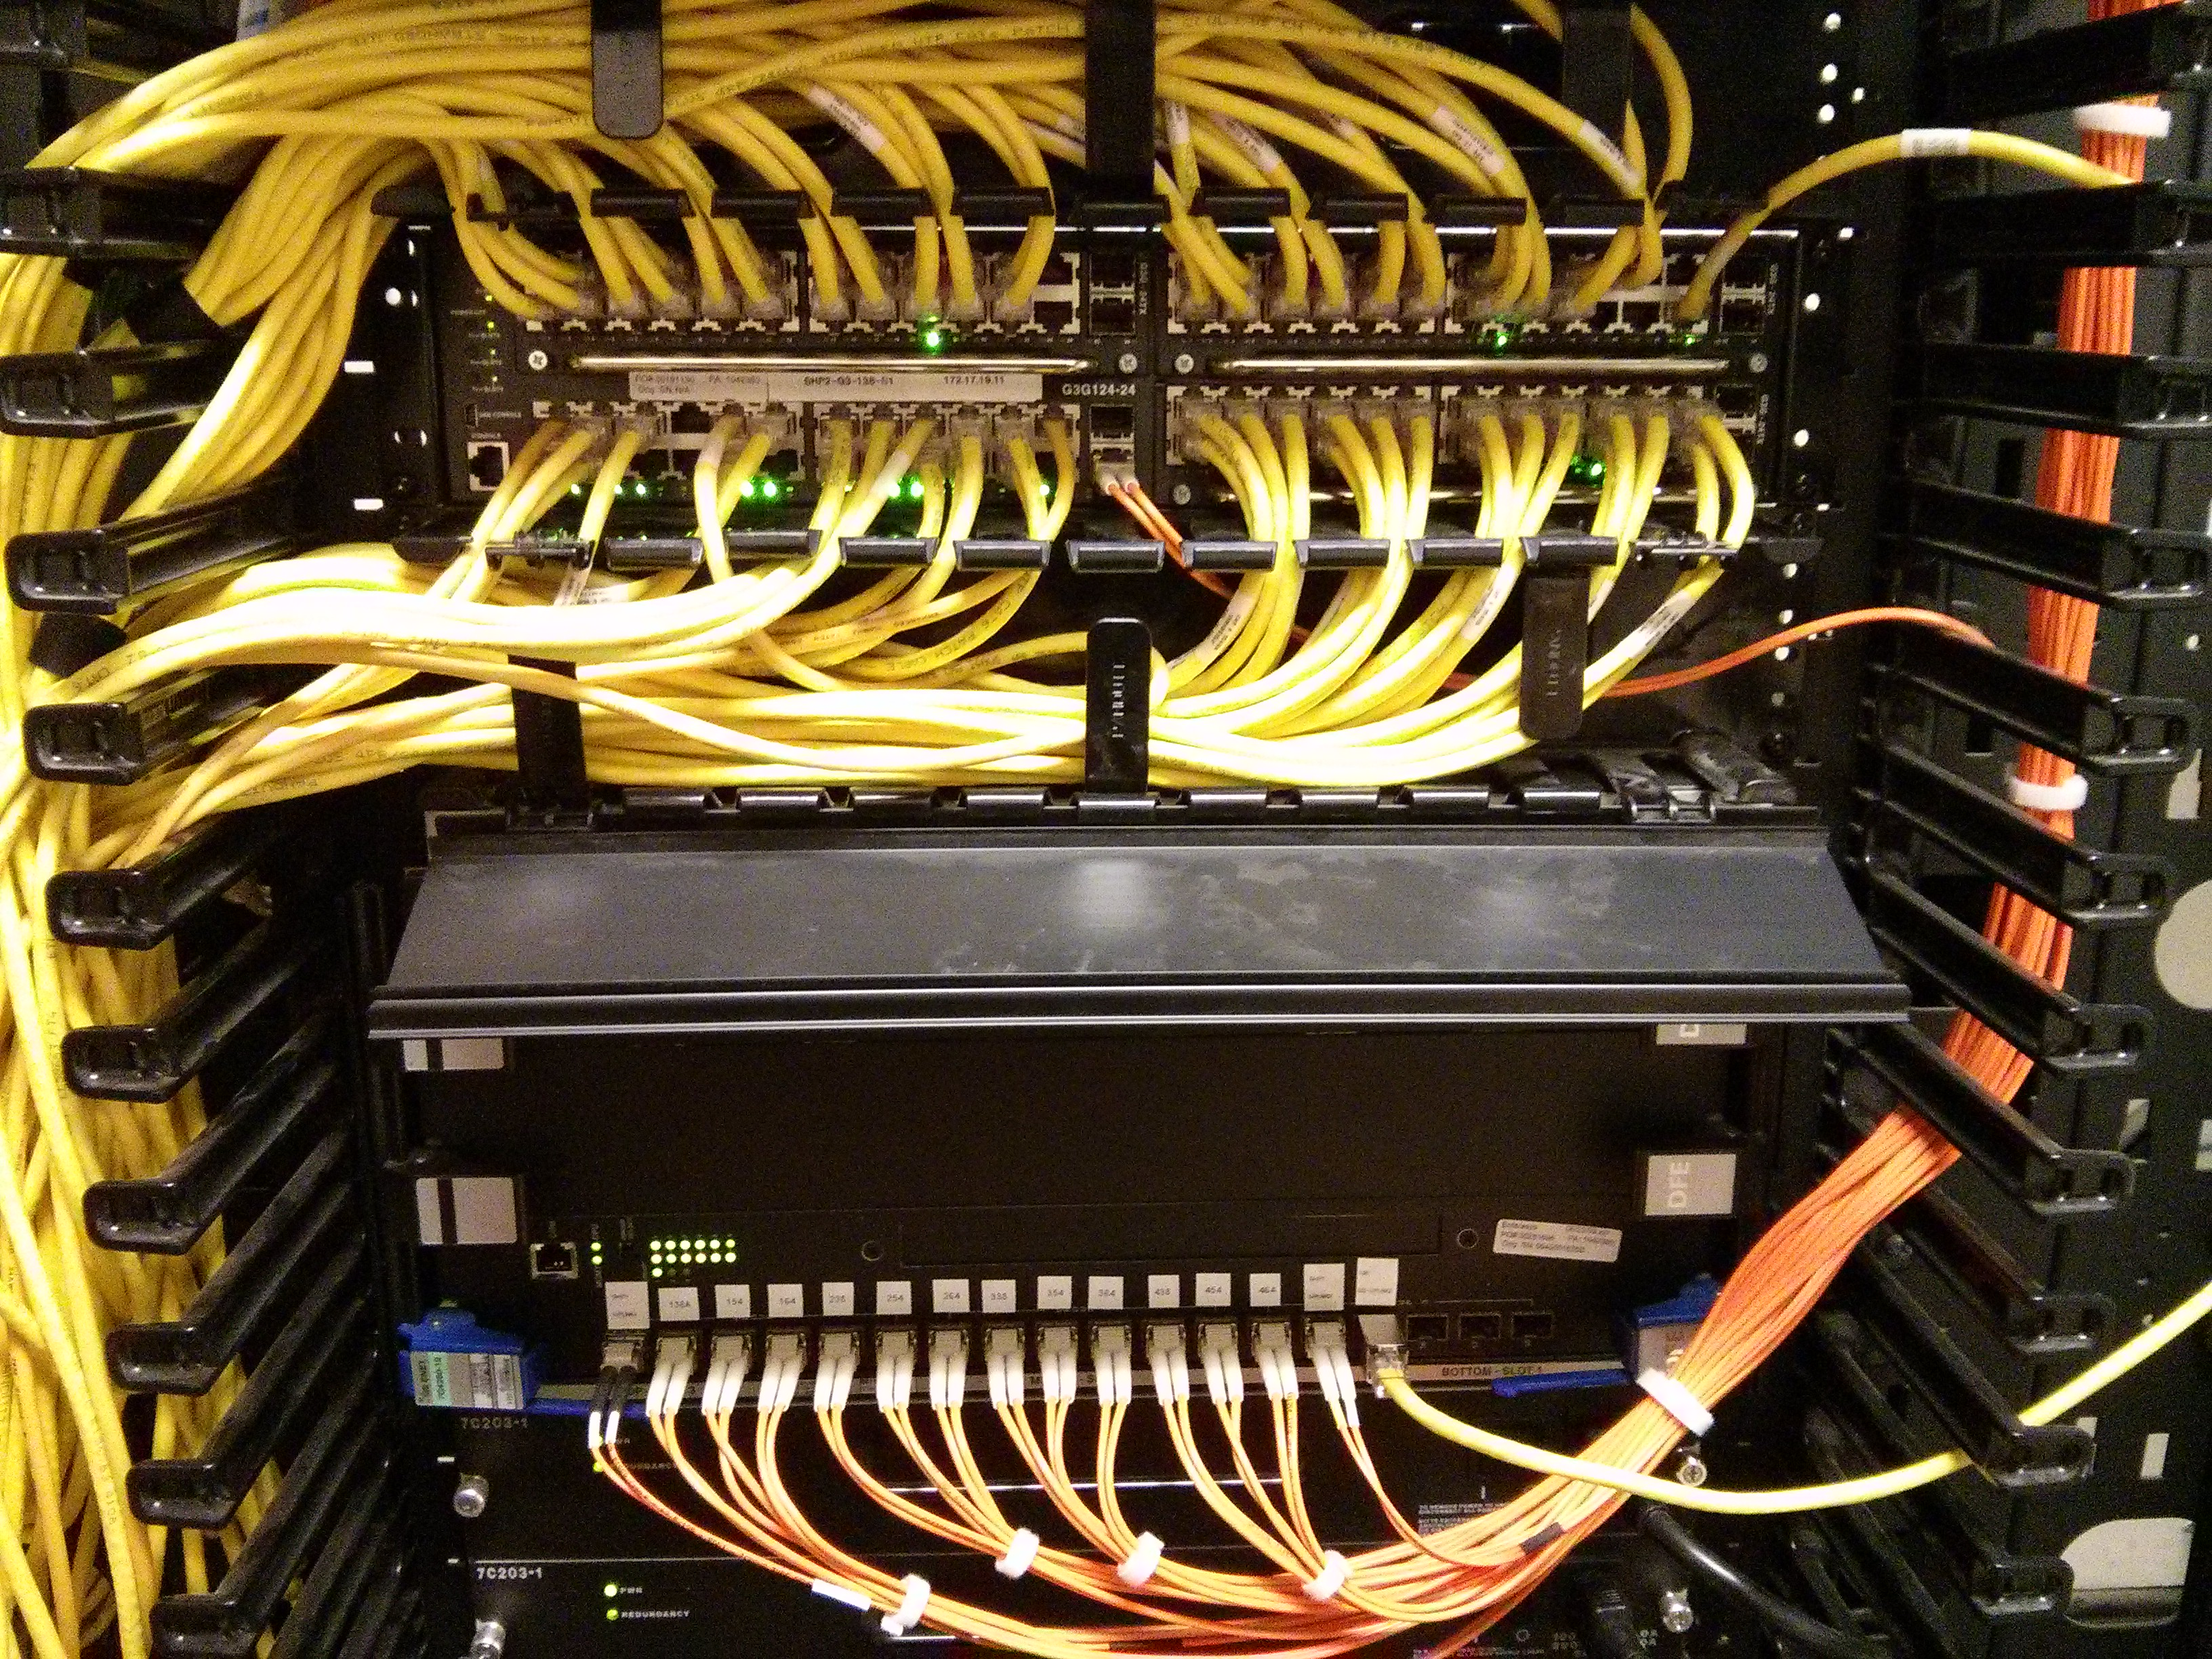 Extreme Networks N Series N3 Chassis Switch